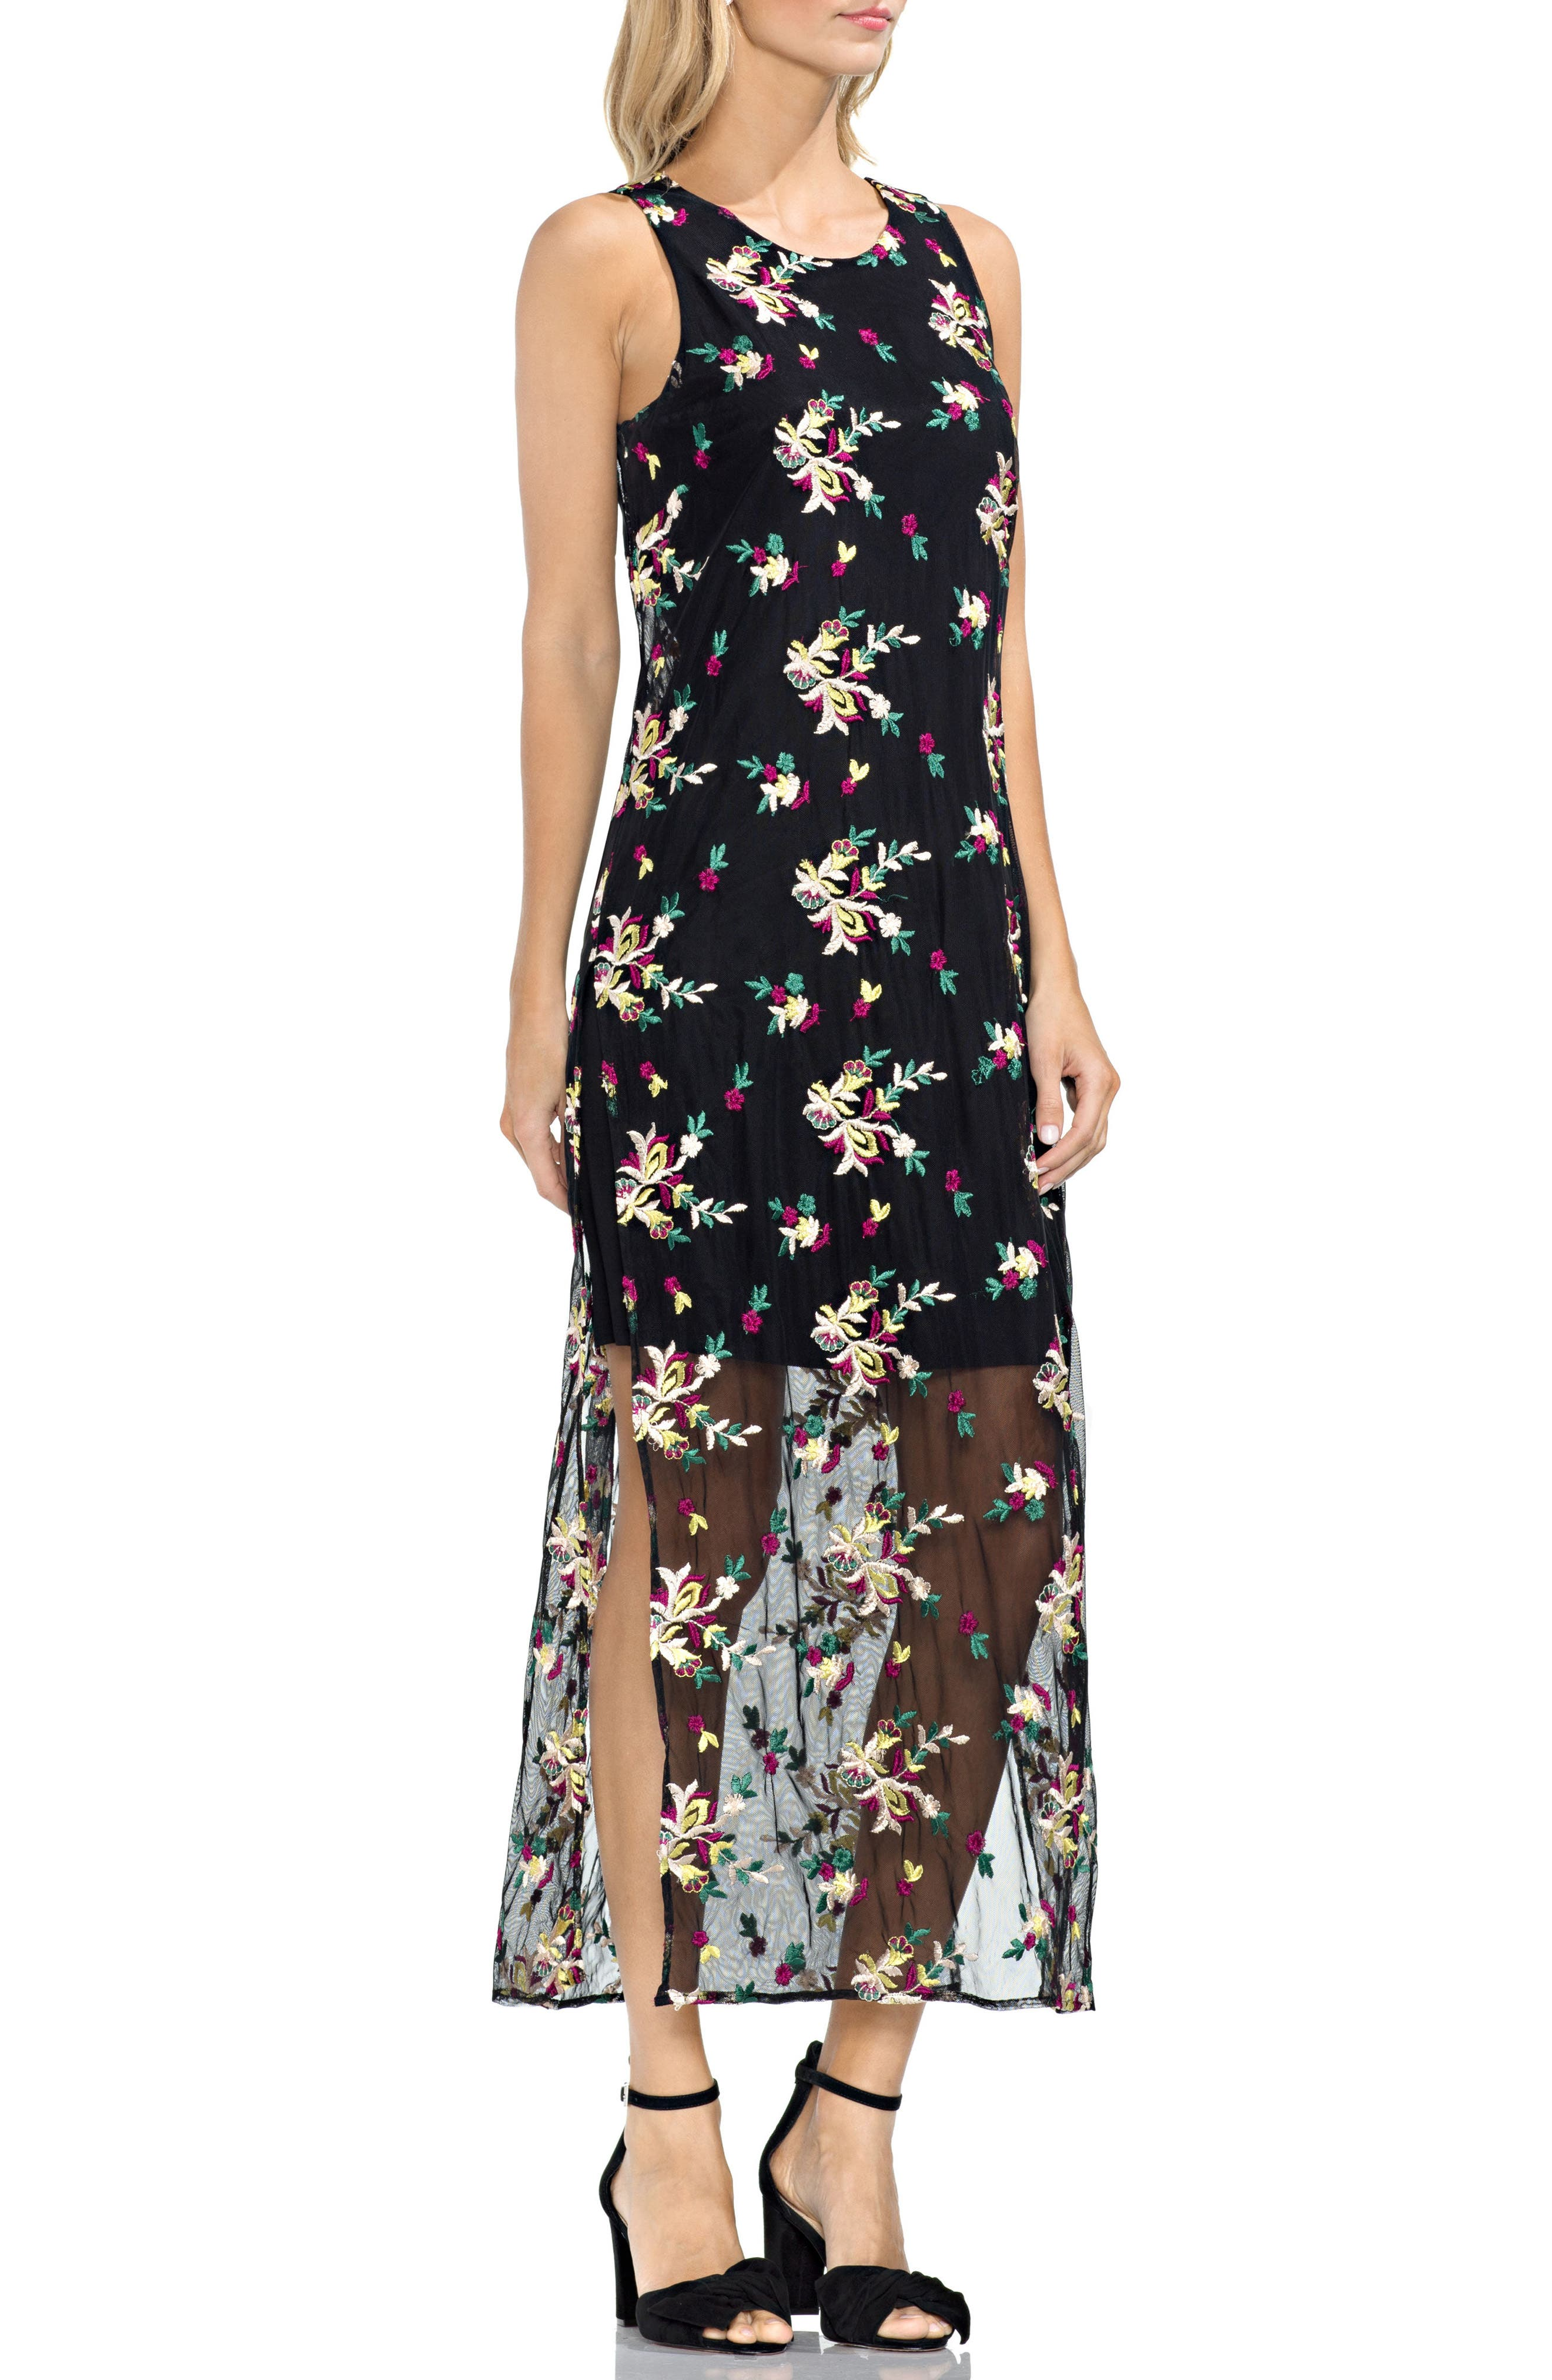 Tropical Embroidered Mesh Overlay Dress,                             Main thumbnail 1, color,                             001